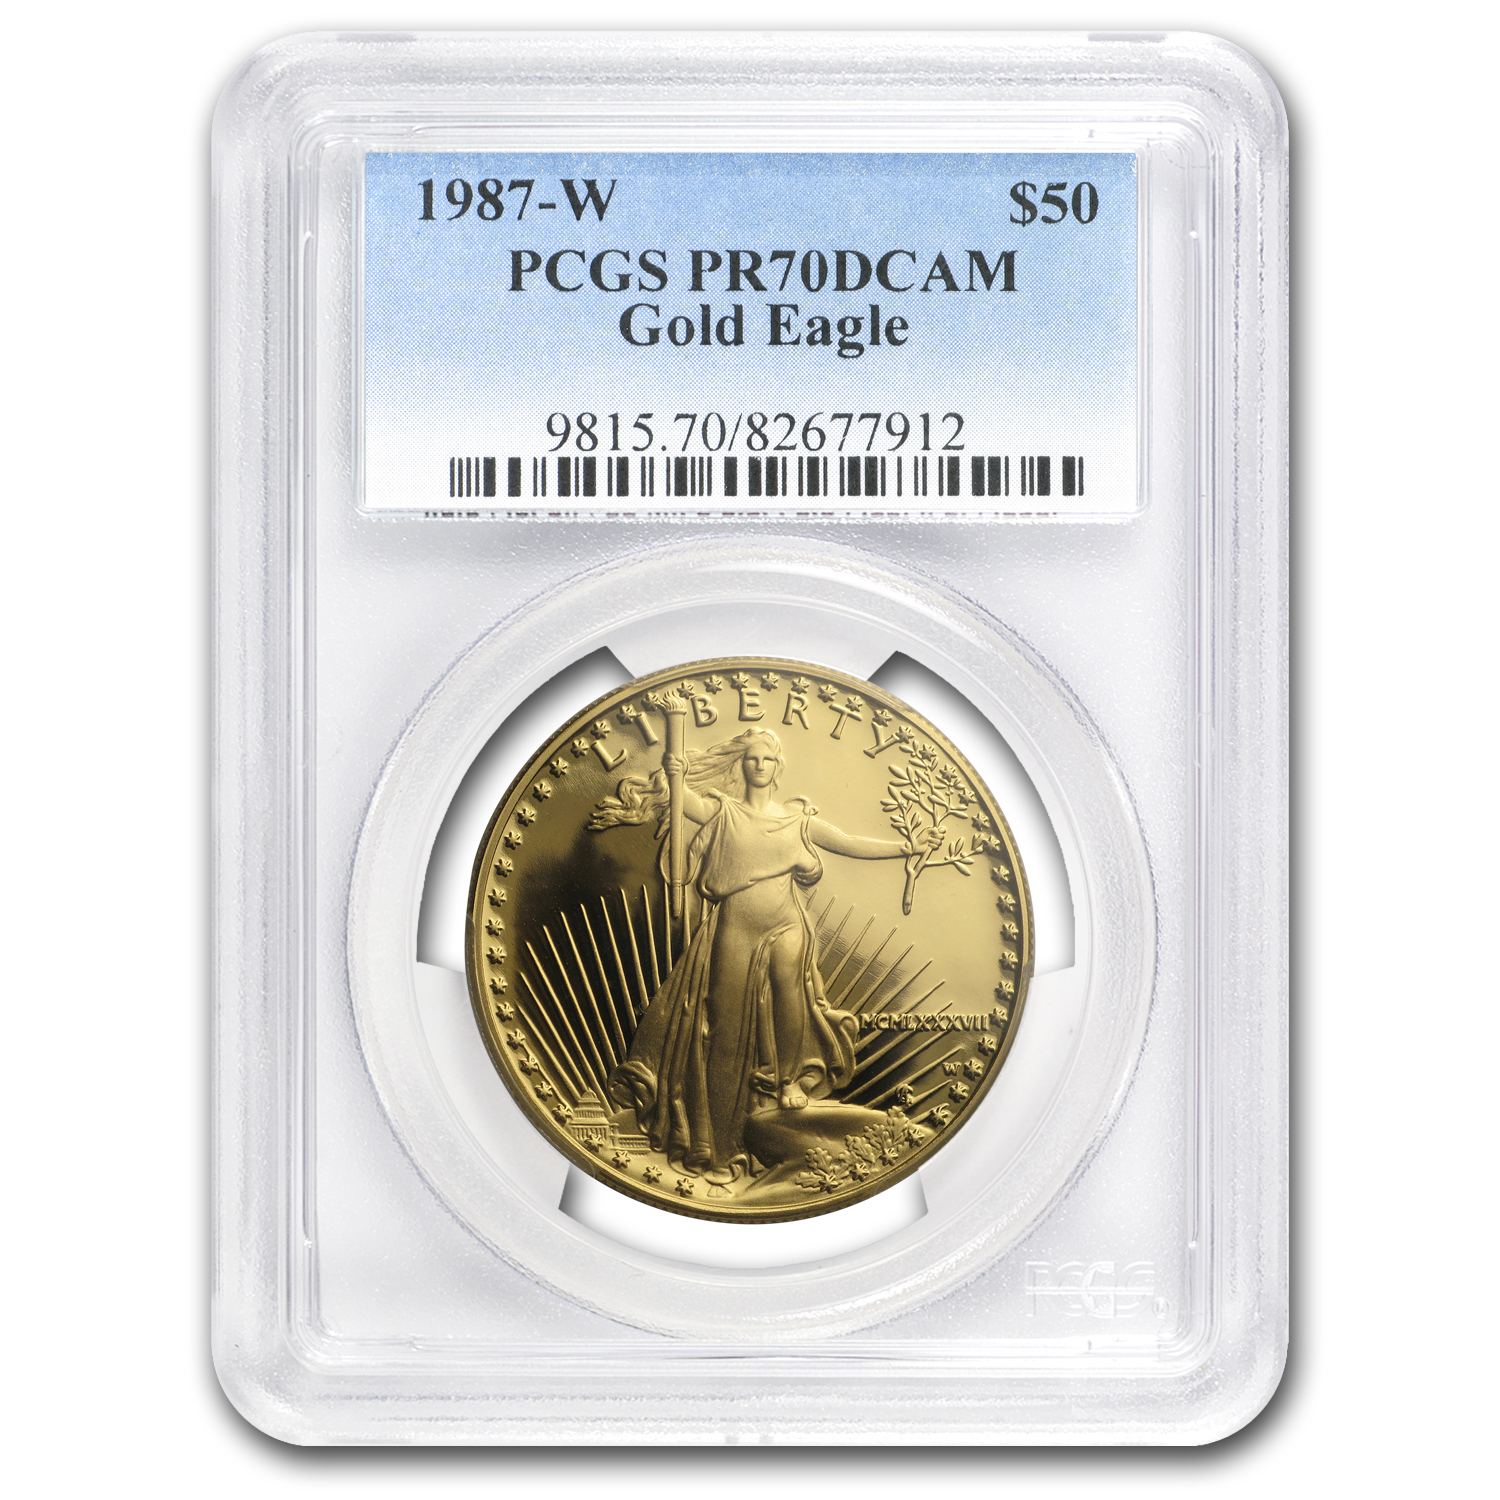 1987 2-Coin Proof Gold American Eagle Set PR-70 PCGS